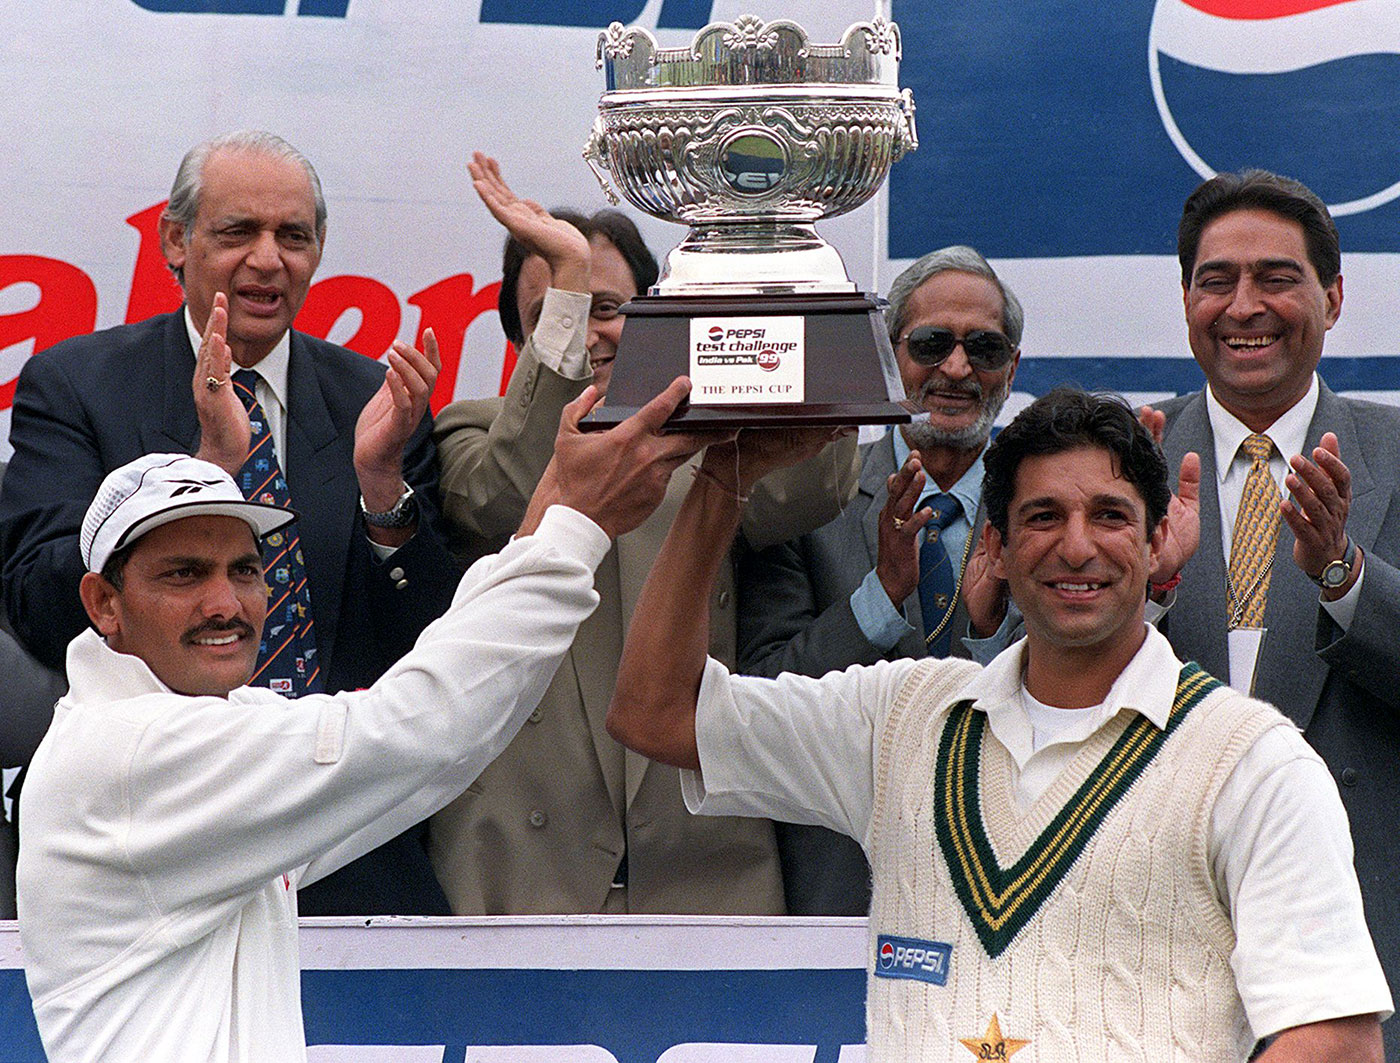 India pulled it back in the Delhi Test, where Kumble famously took ten wickets in an innings, drawing the series 1-1